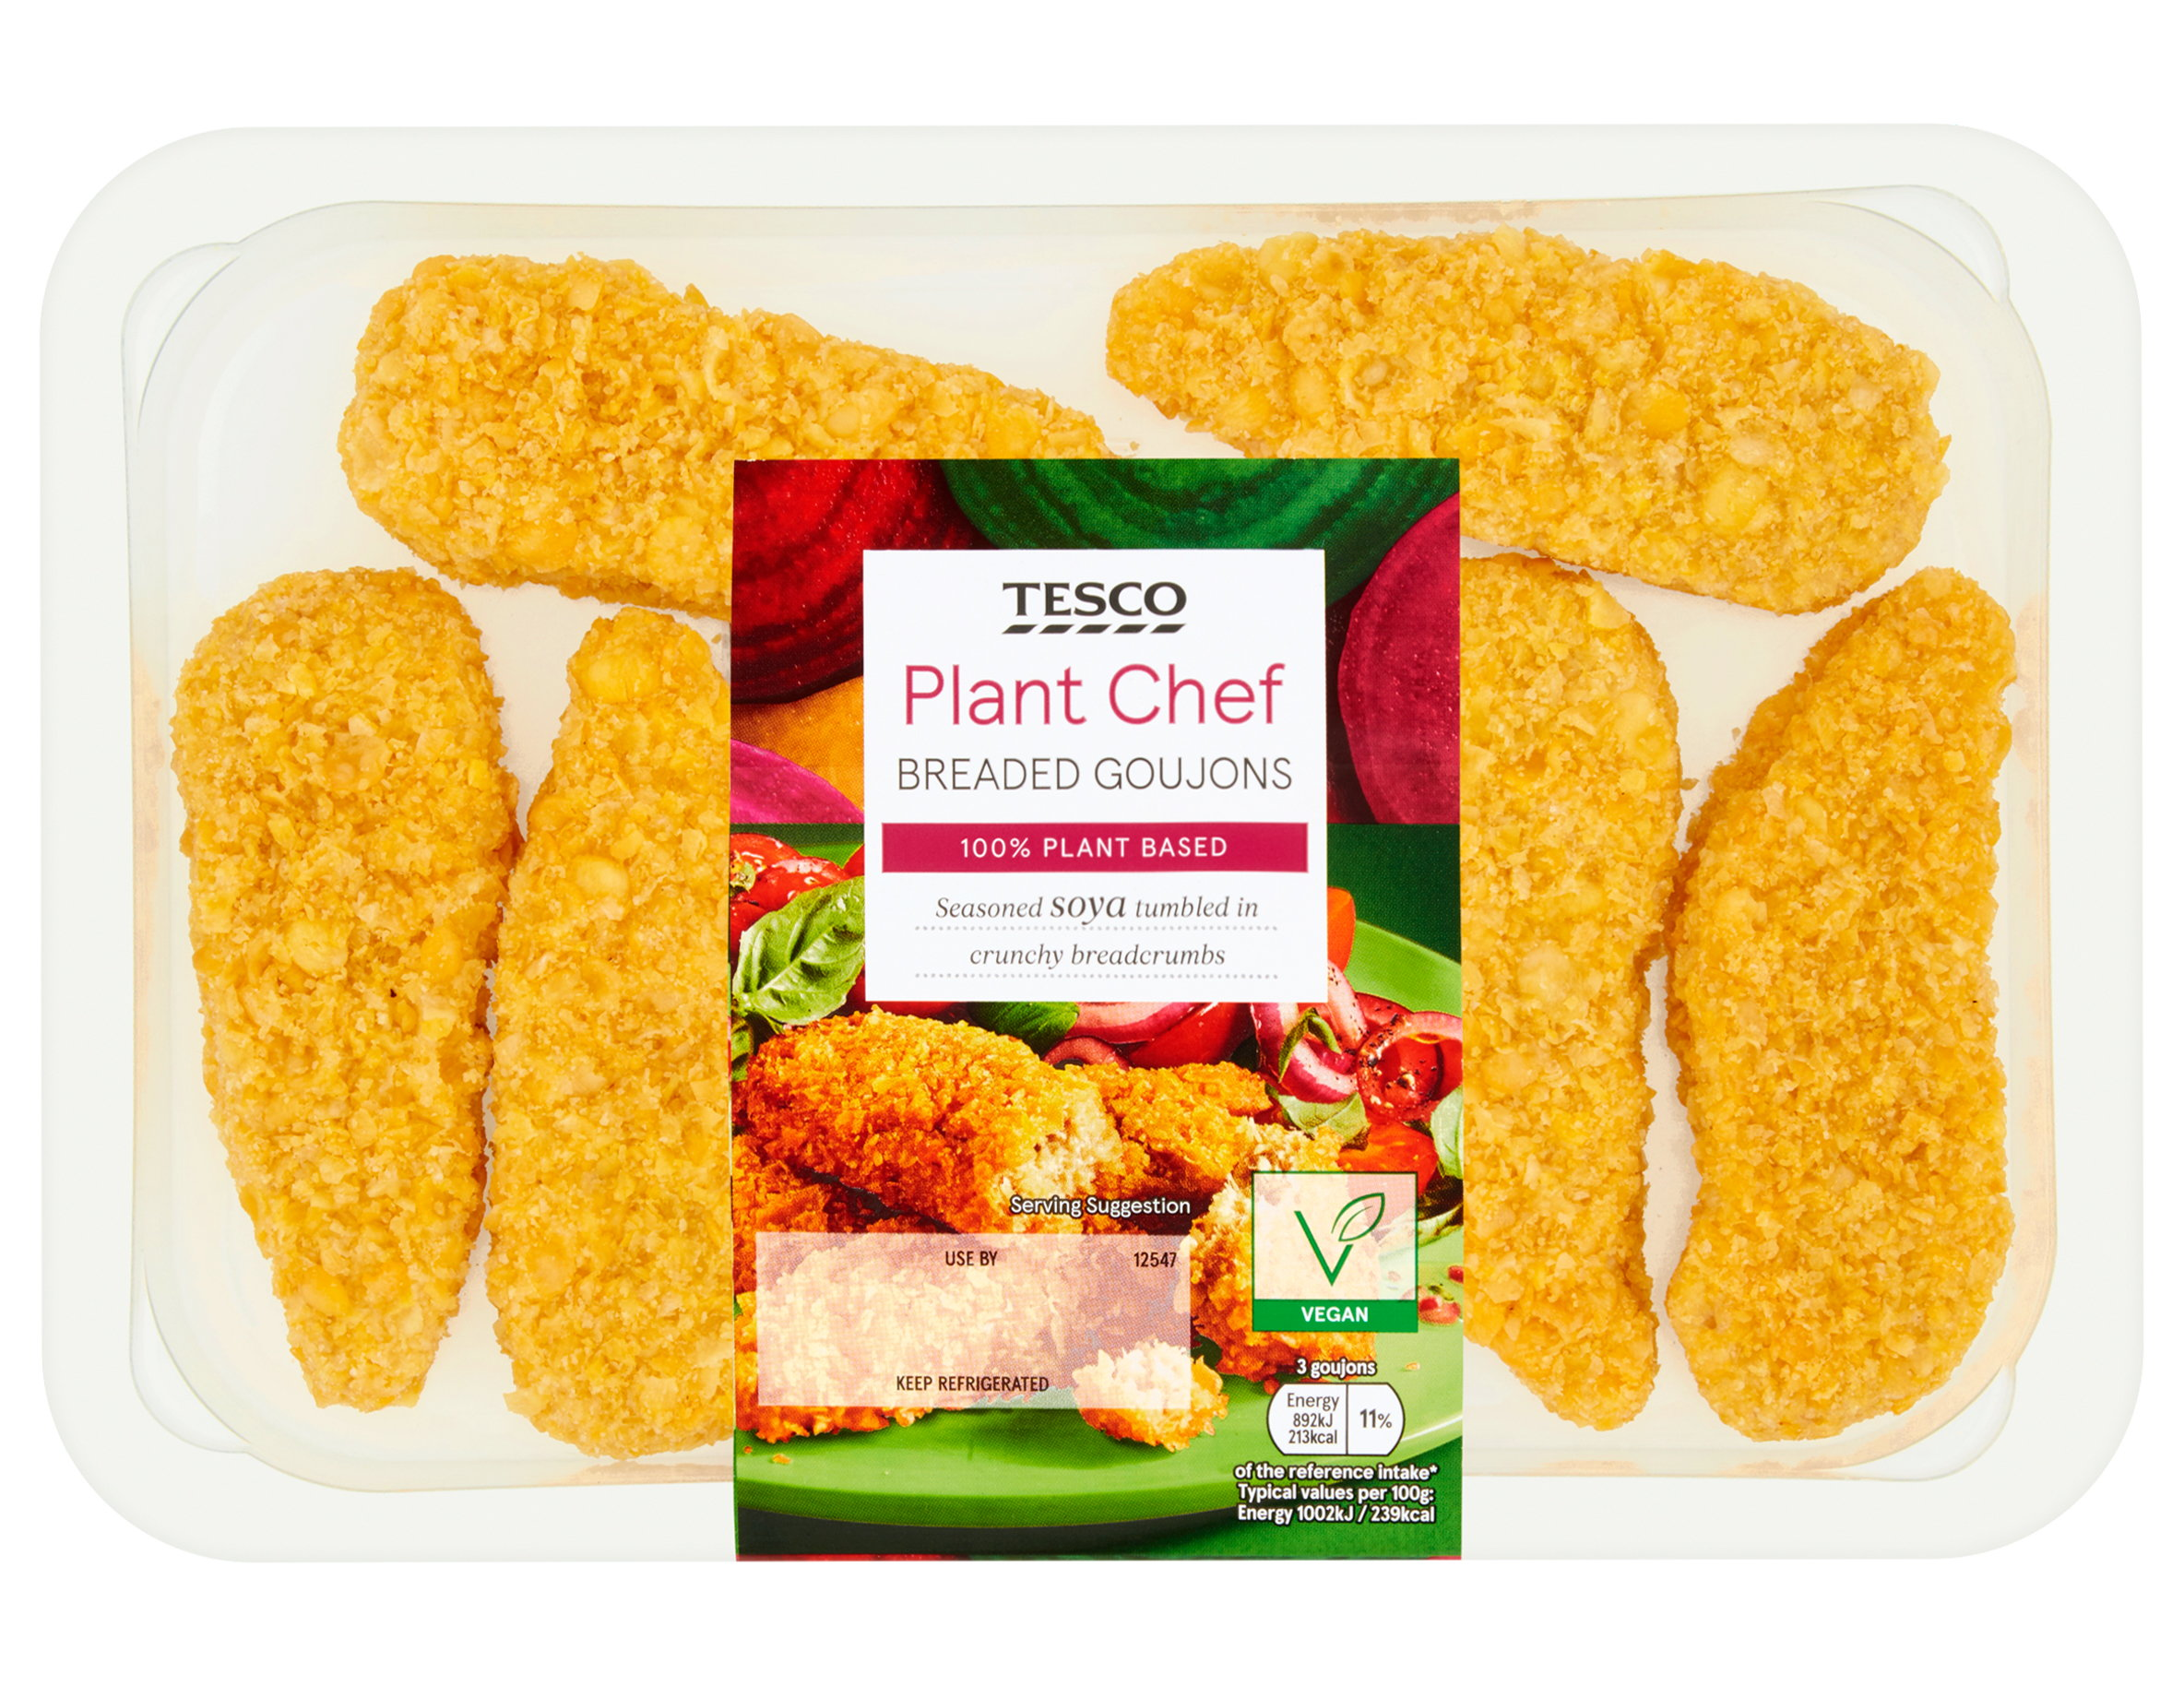 Tesco Plant Chef Breaded GoujonsSeasoned soya tumbled in crunchy breadcrumbs